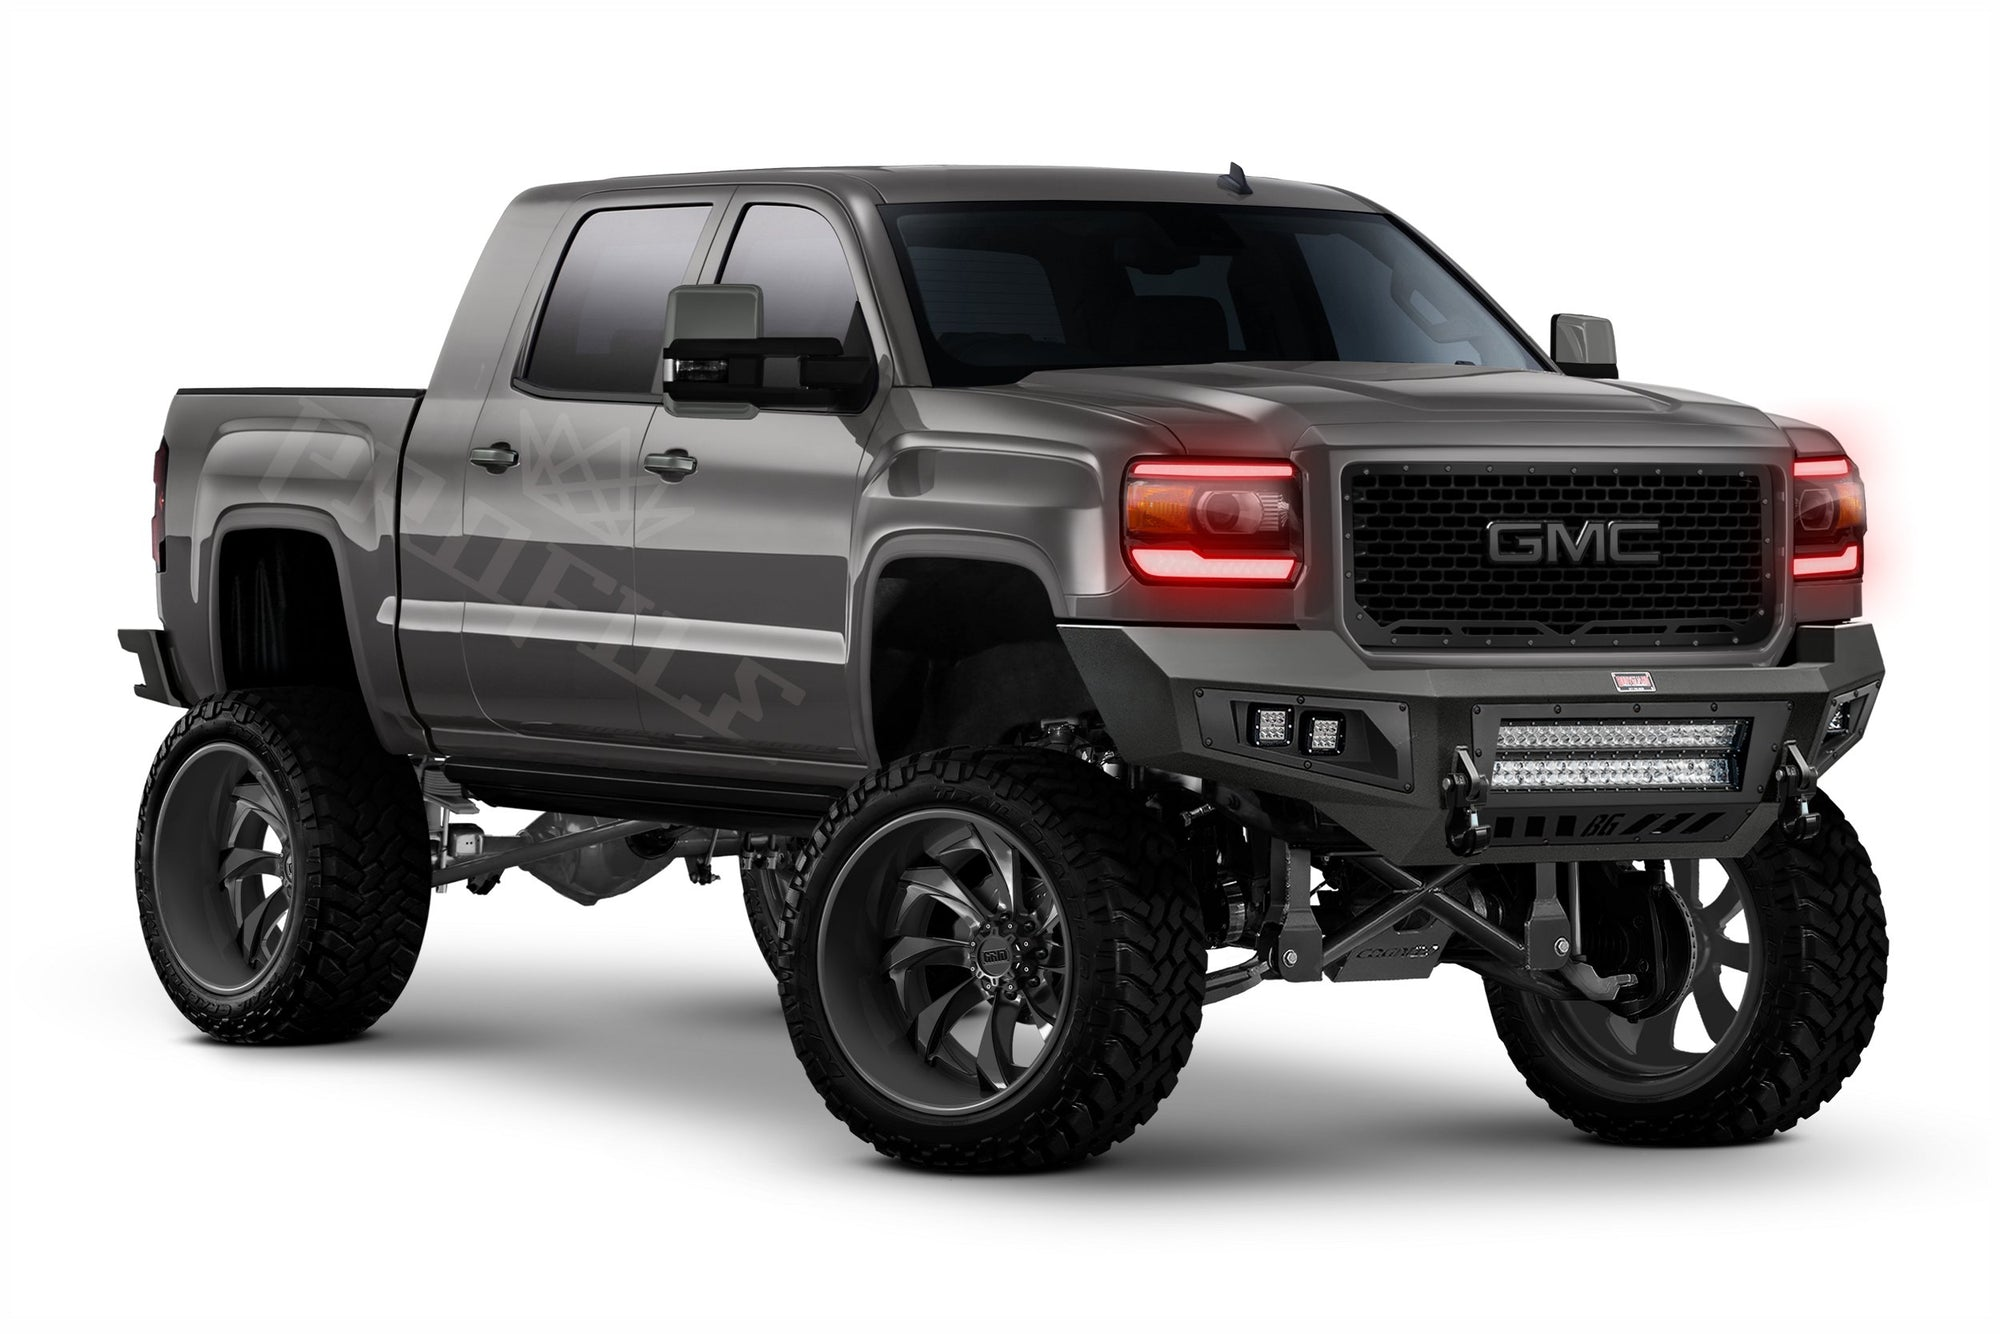 13-18 GMC SIERRA: PROFILE PIXEL DRL BOARDS